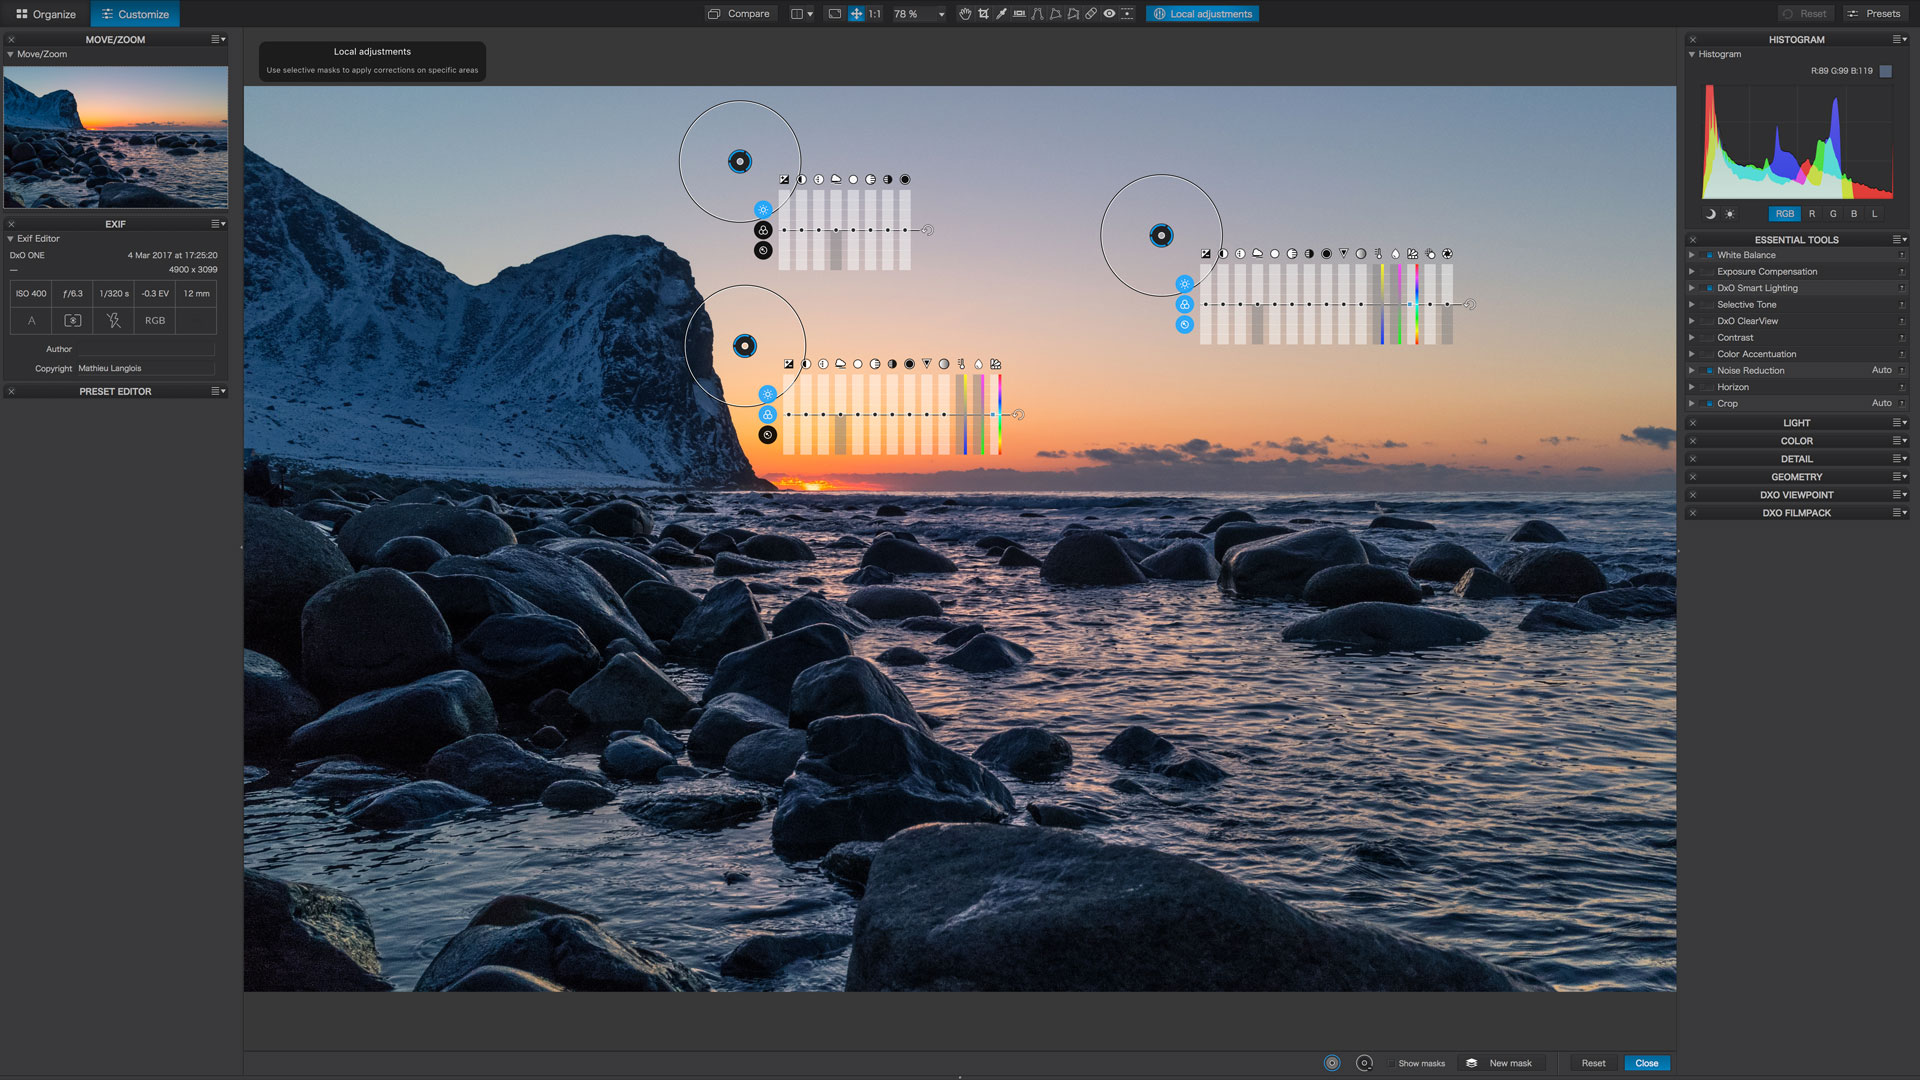 Vulcanico Governare capoc  DxO brings PhotoLab 1.2 update and launches Nik Collection 2018 | Life  after Photoshop